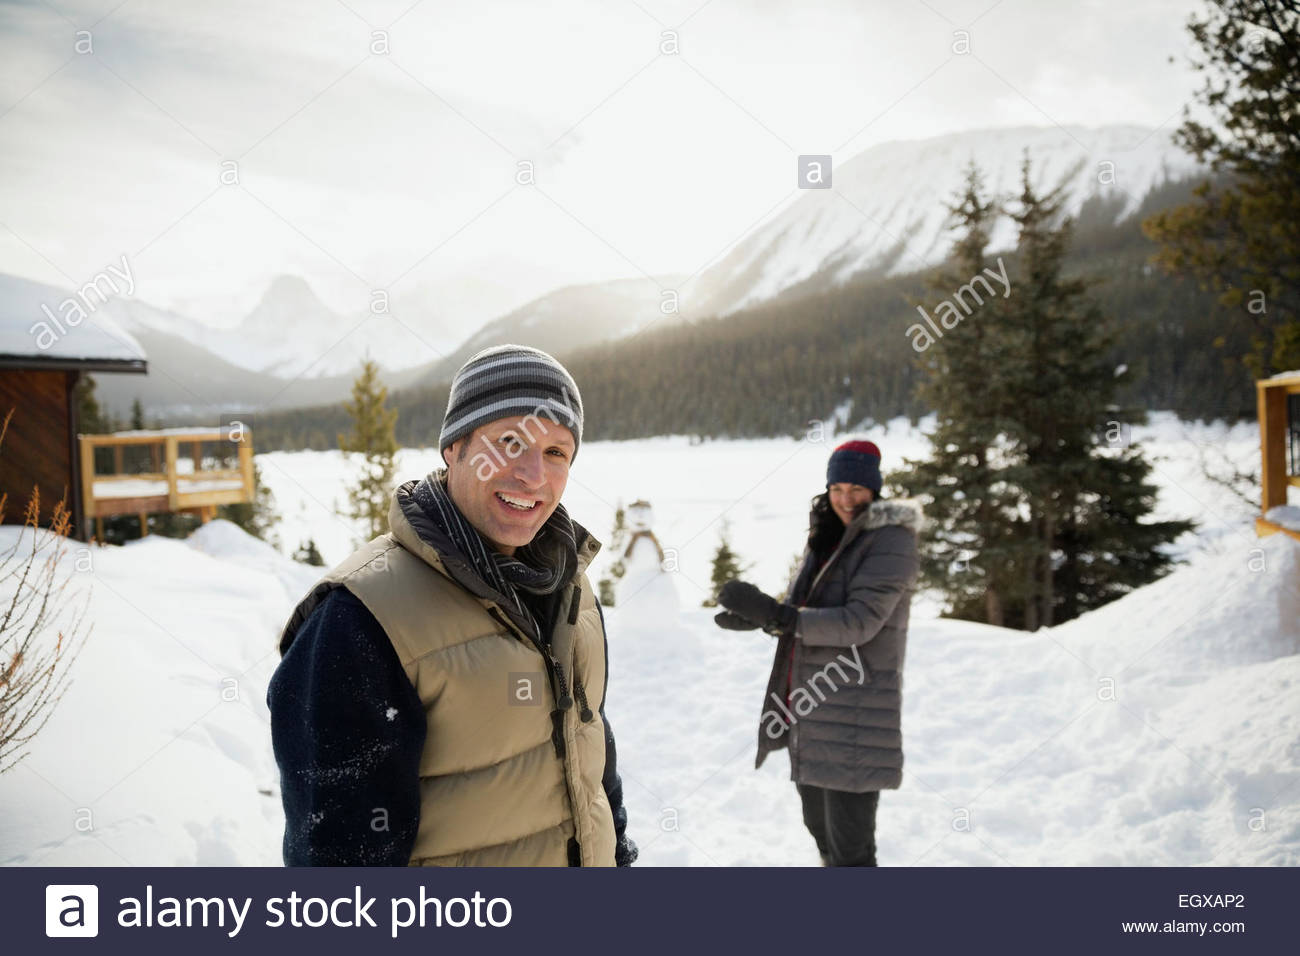 Portrait of smiling couple in snow below mountains - Stock Image